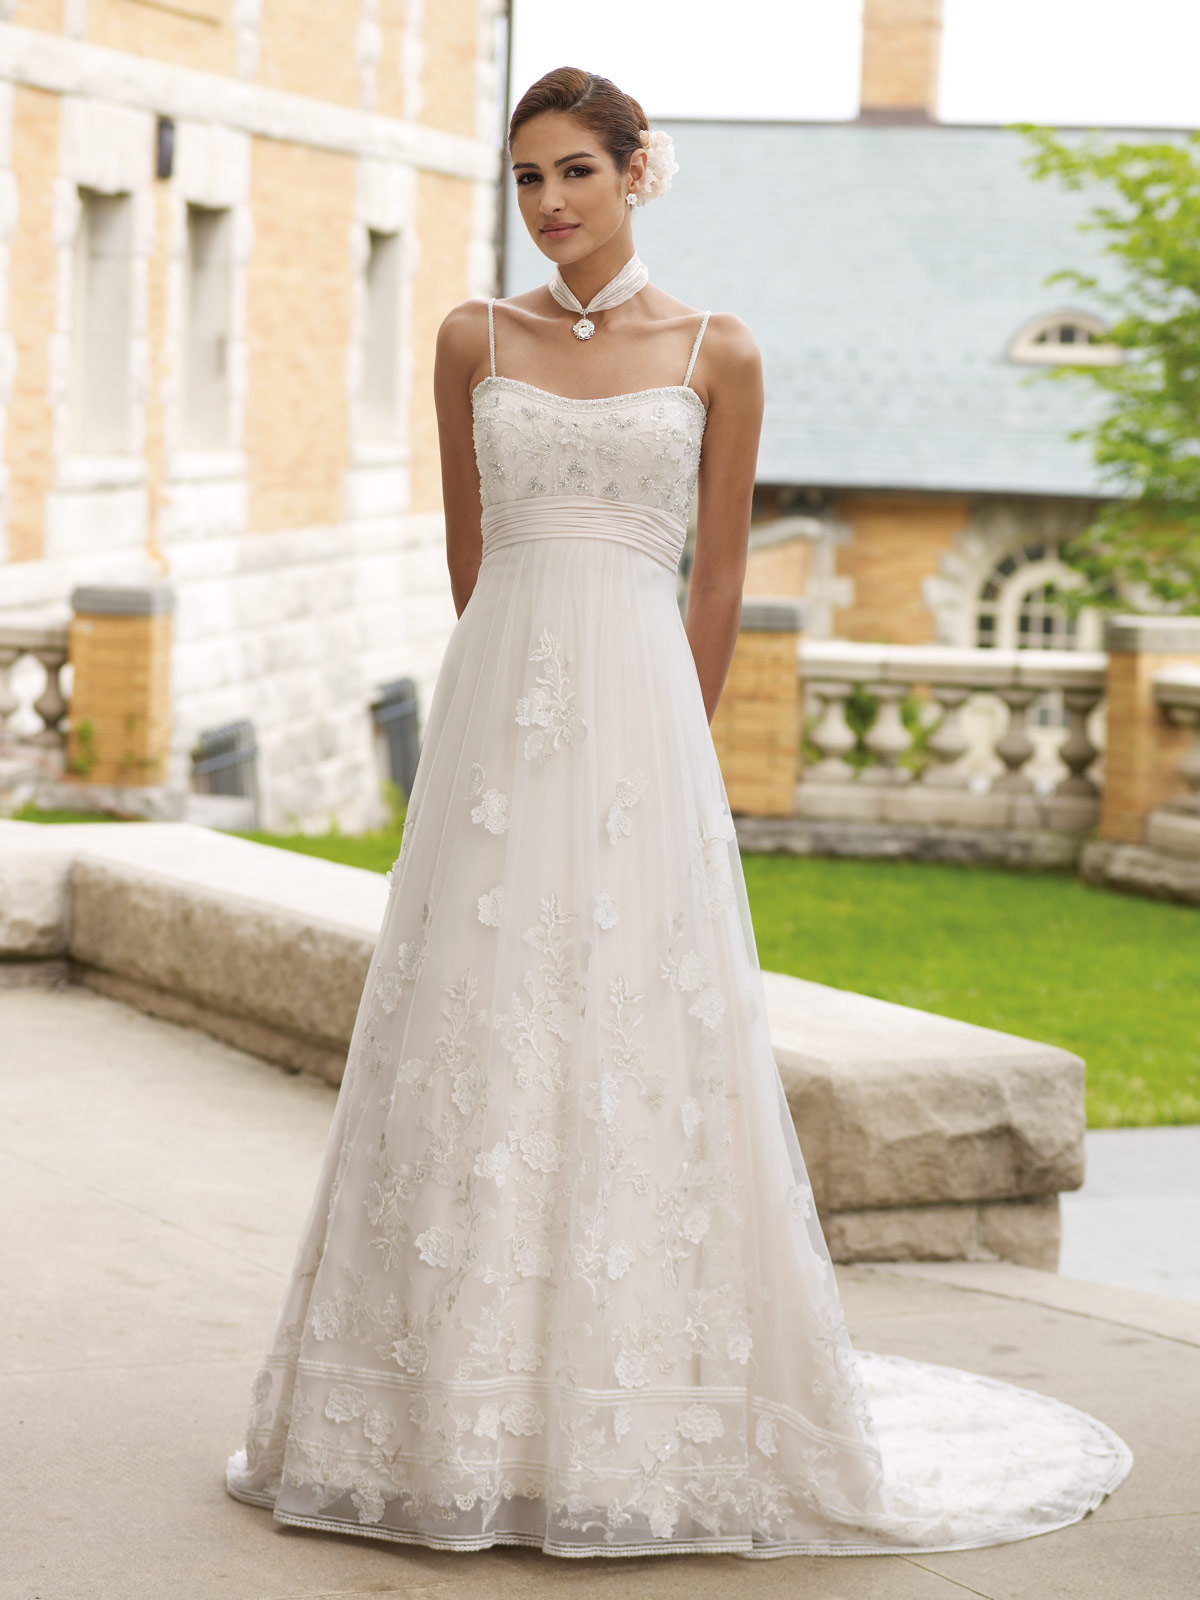 Feel heavenly in a beautiful wedding dress of your choice best feel heavenly in a beautiful wedding dress of your choice best dresses review ombrellifo Image collections